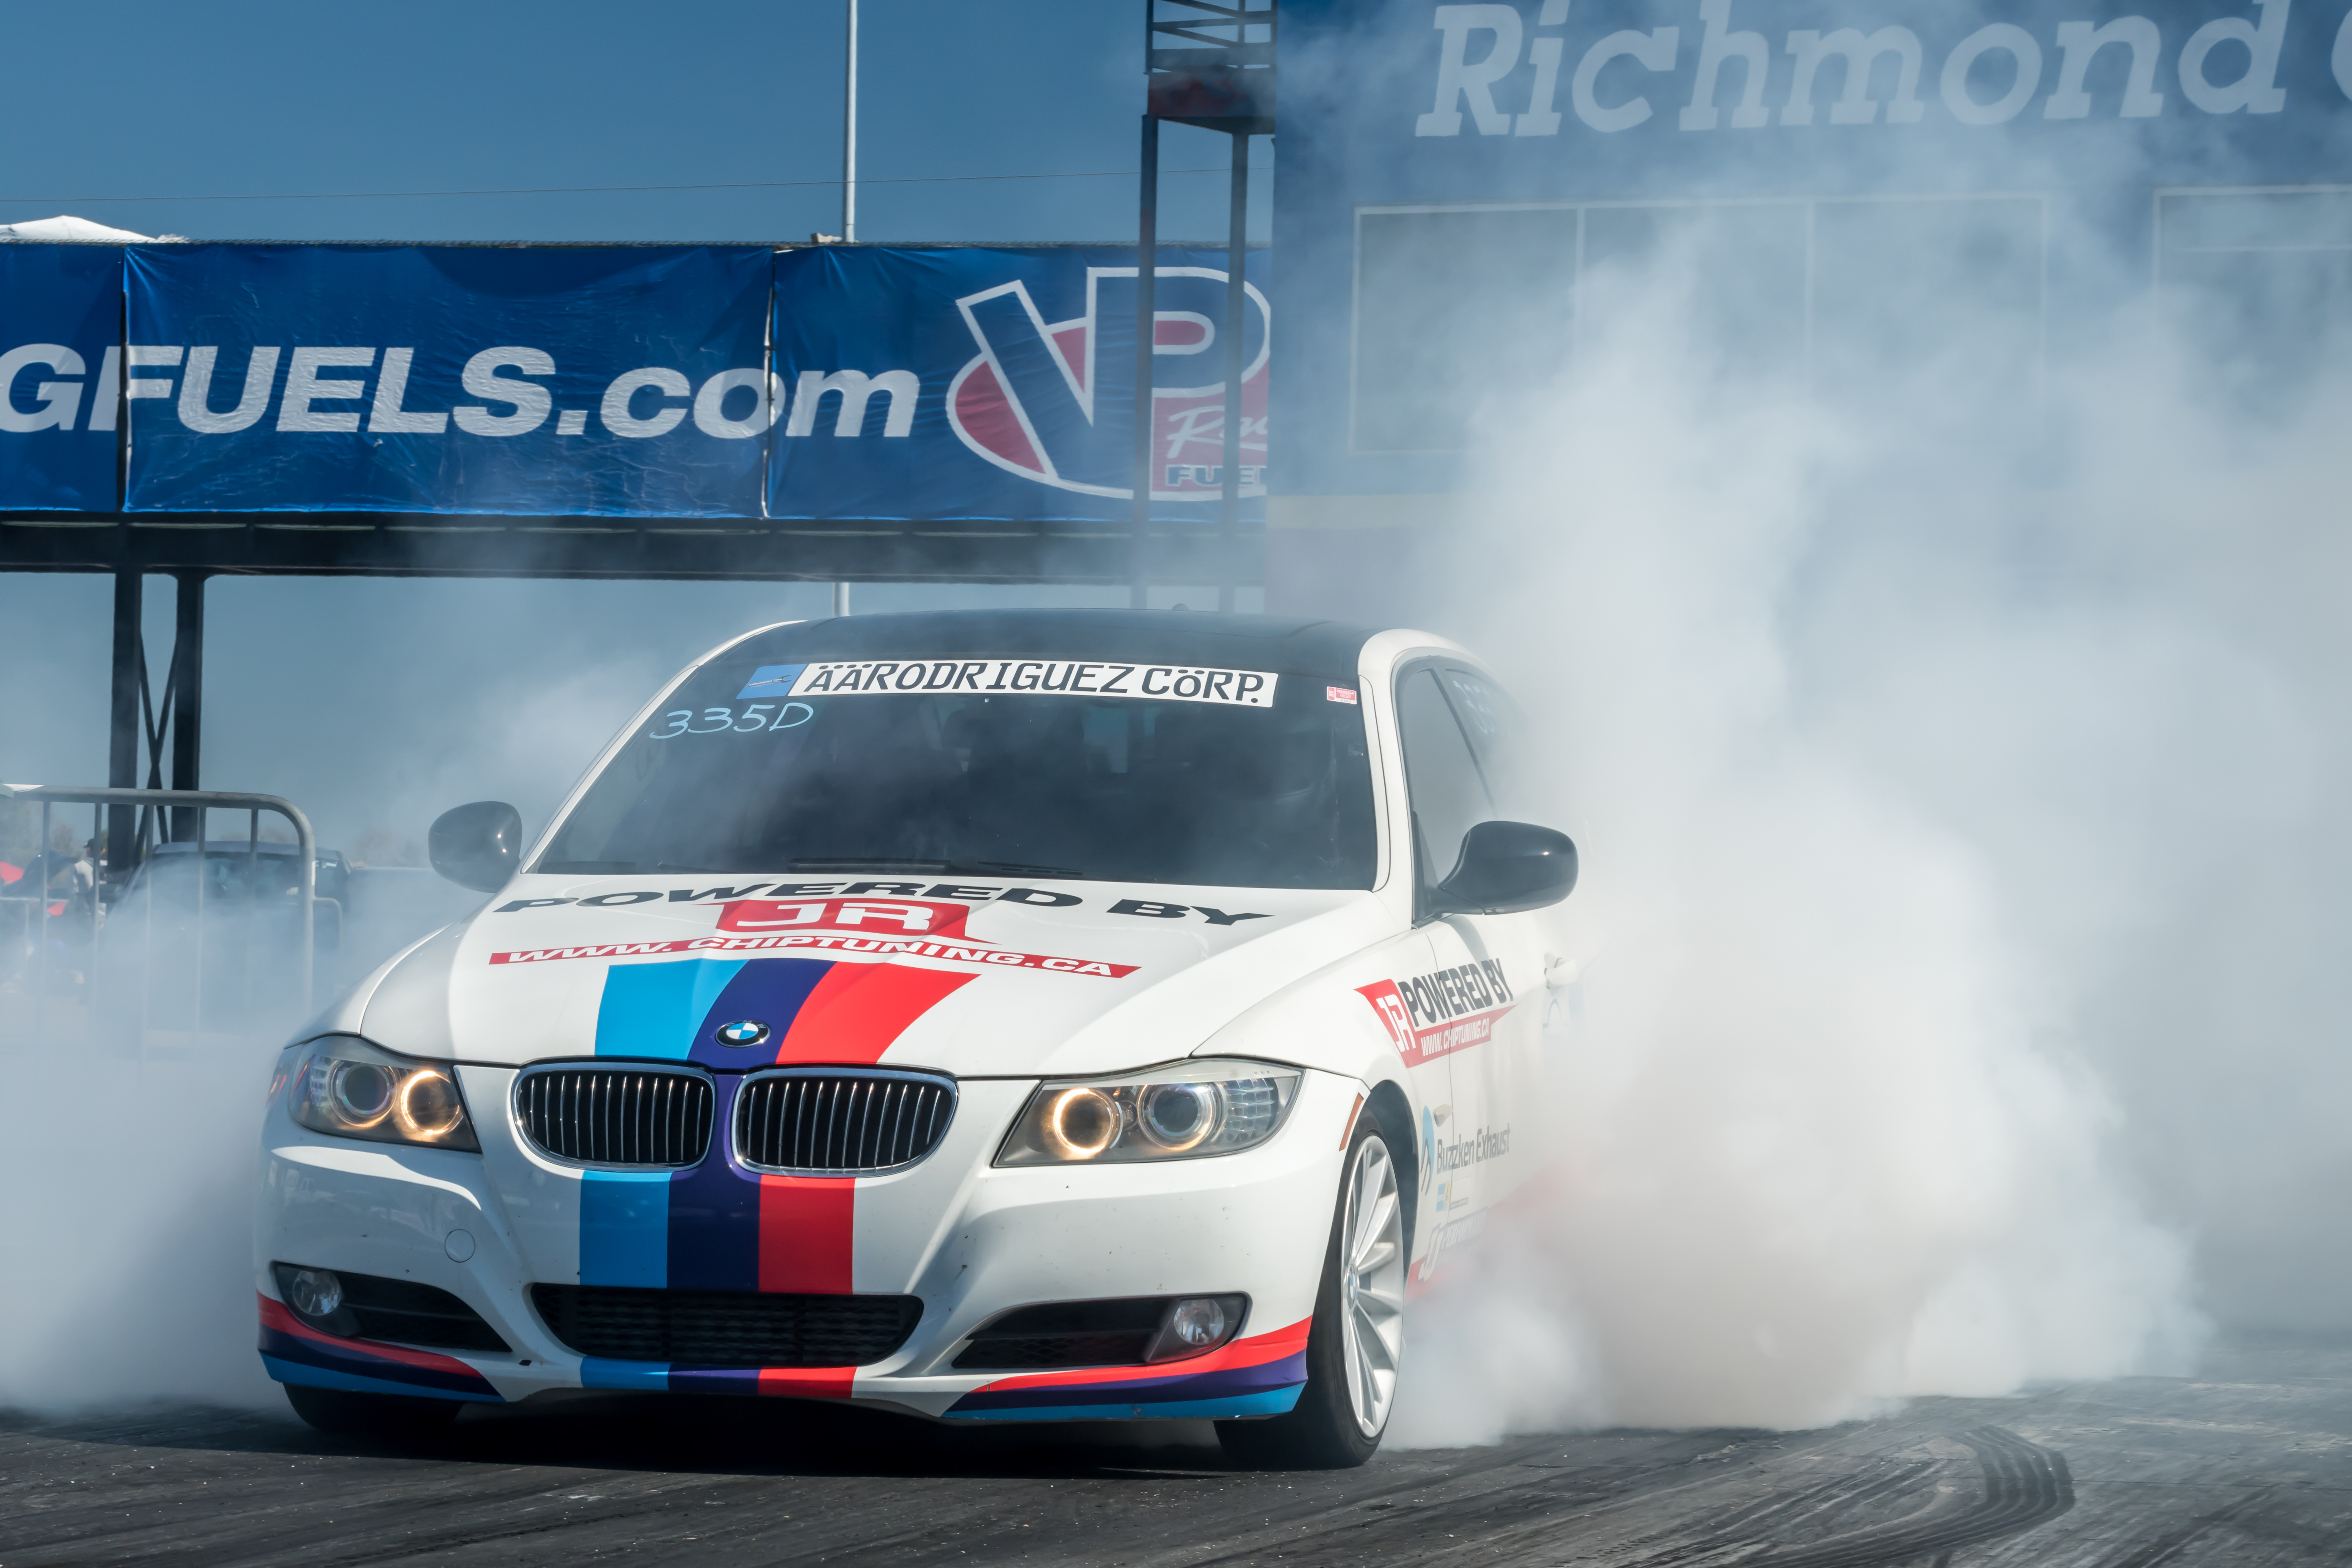 BMW 335D World Record 1/4 Mile